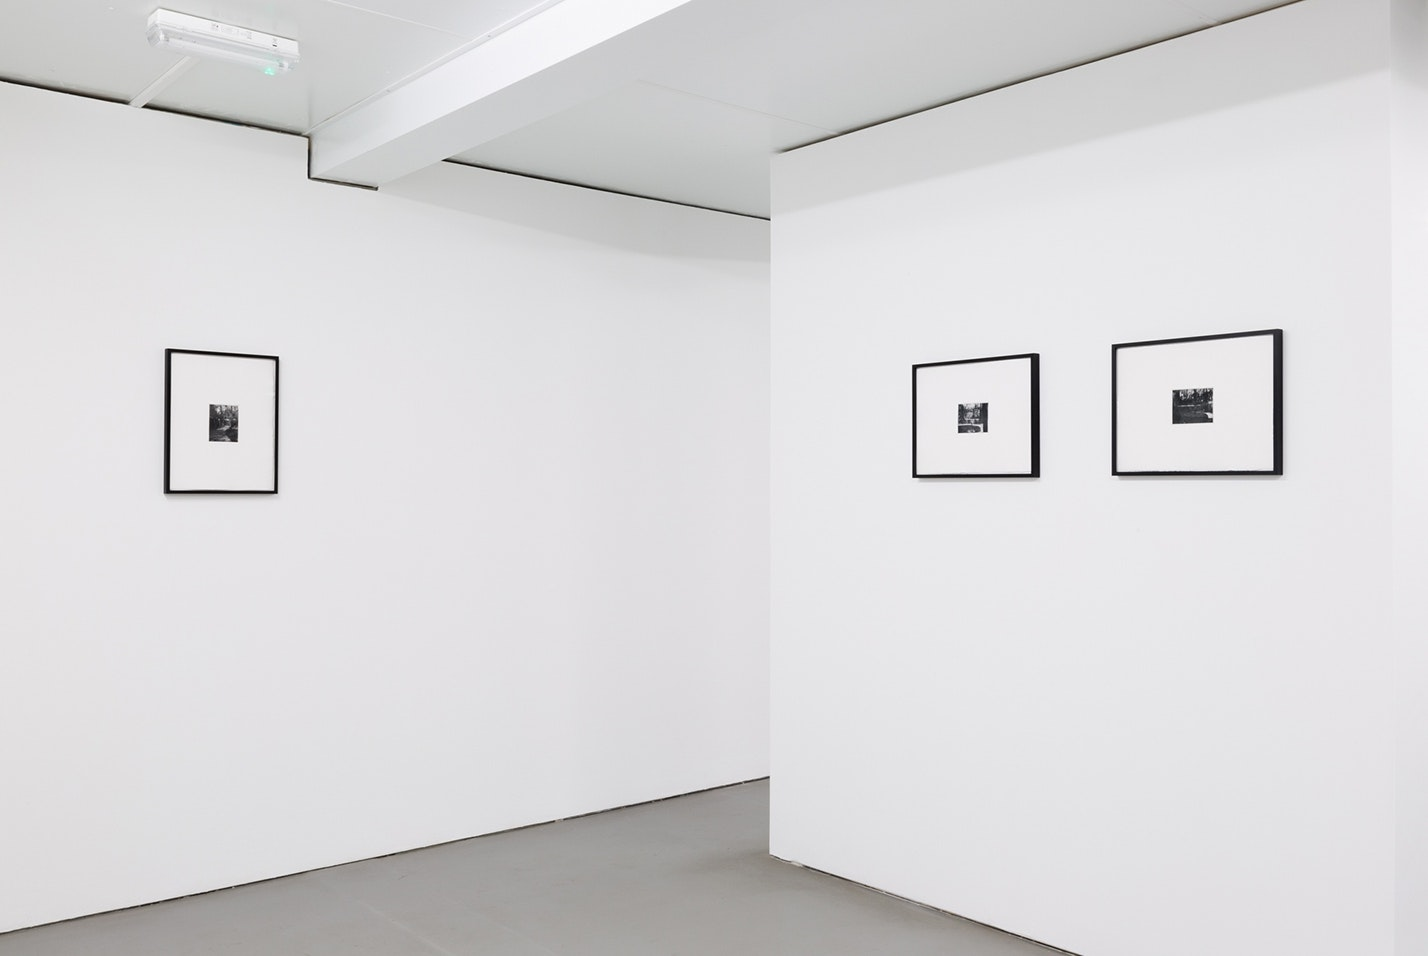 *110 rue du Bac*, 3 photopolymer prints on paper, framed. Photographer and date of creation unknown. Reproduced to scale, by permission of the University of Glasgow Library, Special Collections, 2017. Photo by Tom Nolan.